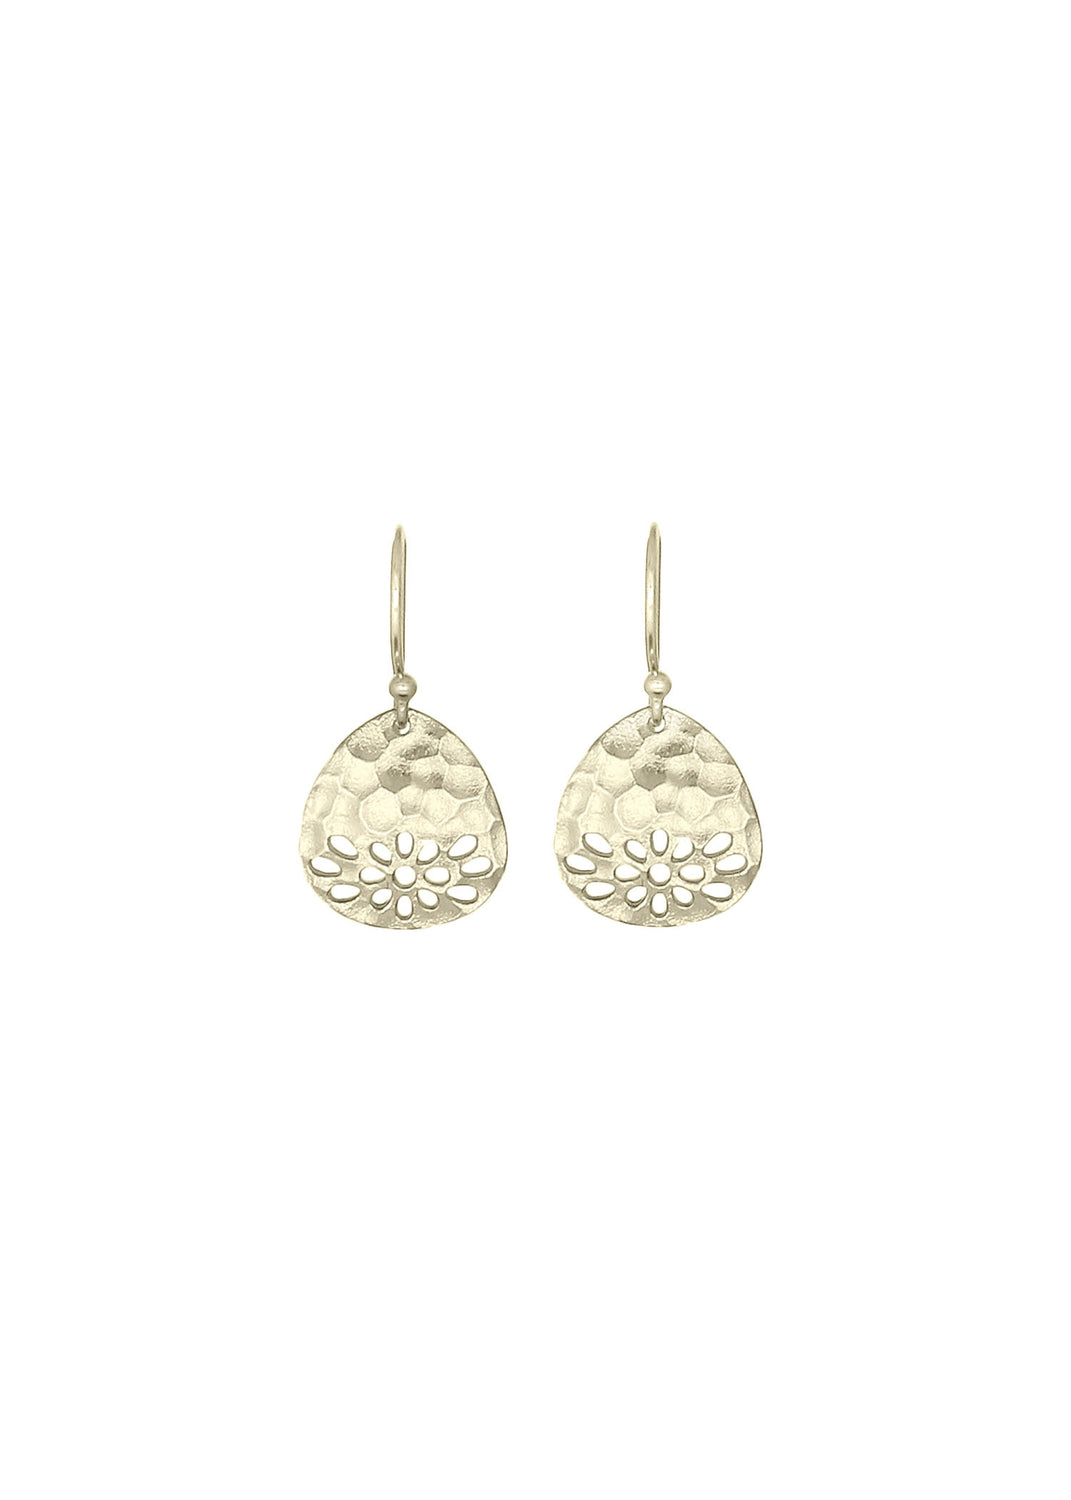 Nicole Fendel Delilah Small Earrings - The Artisan Storeroom